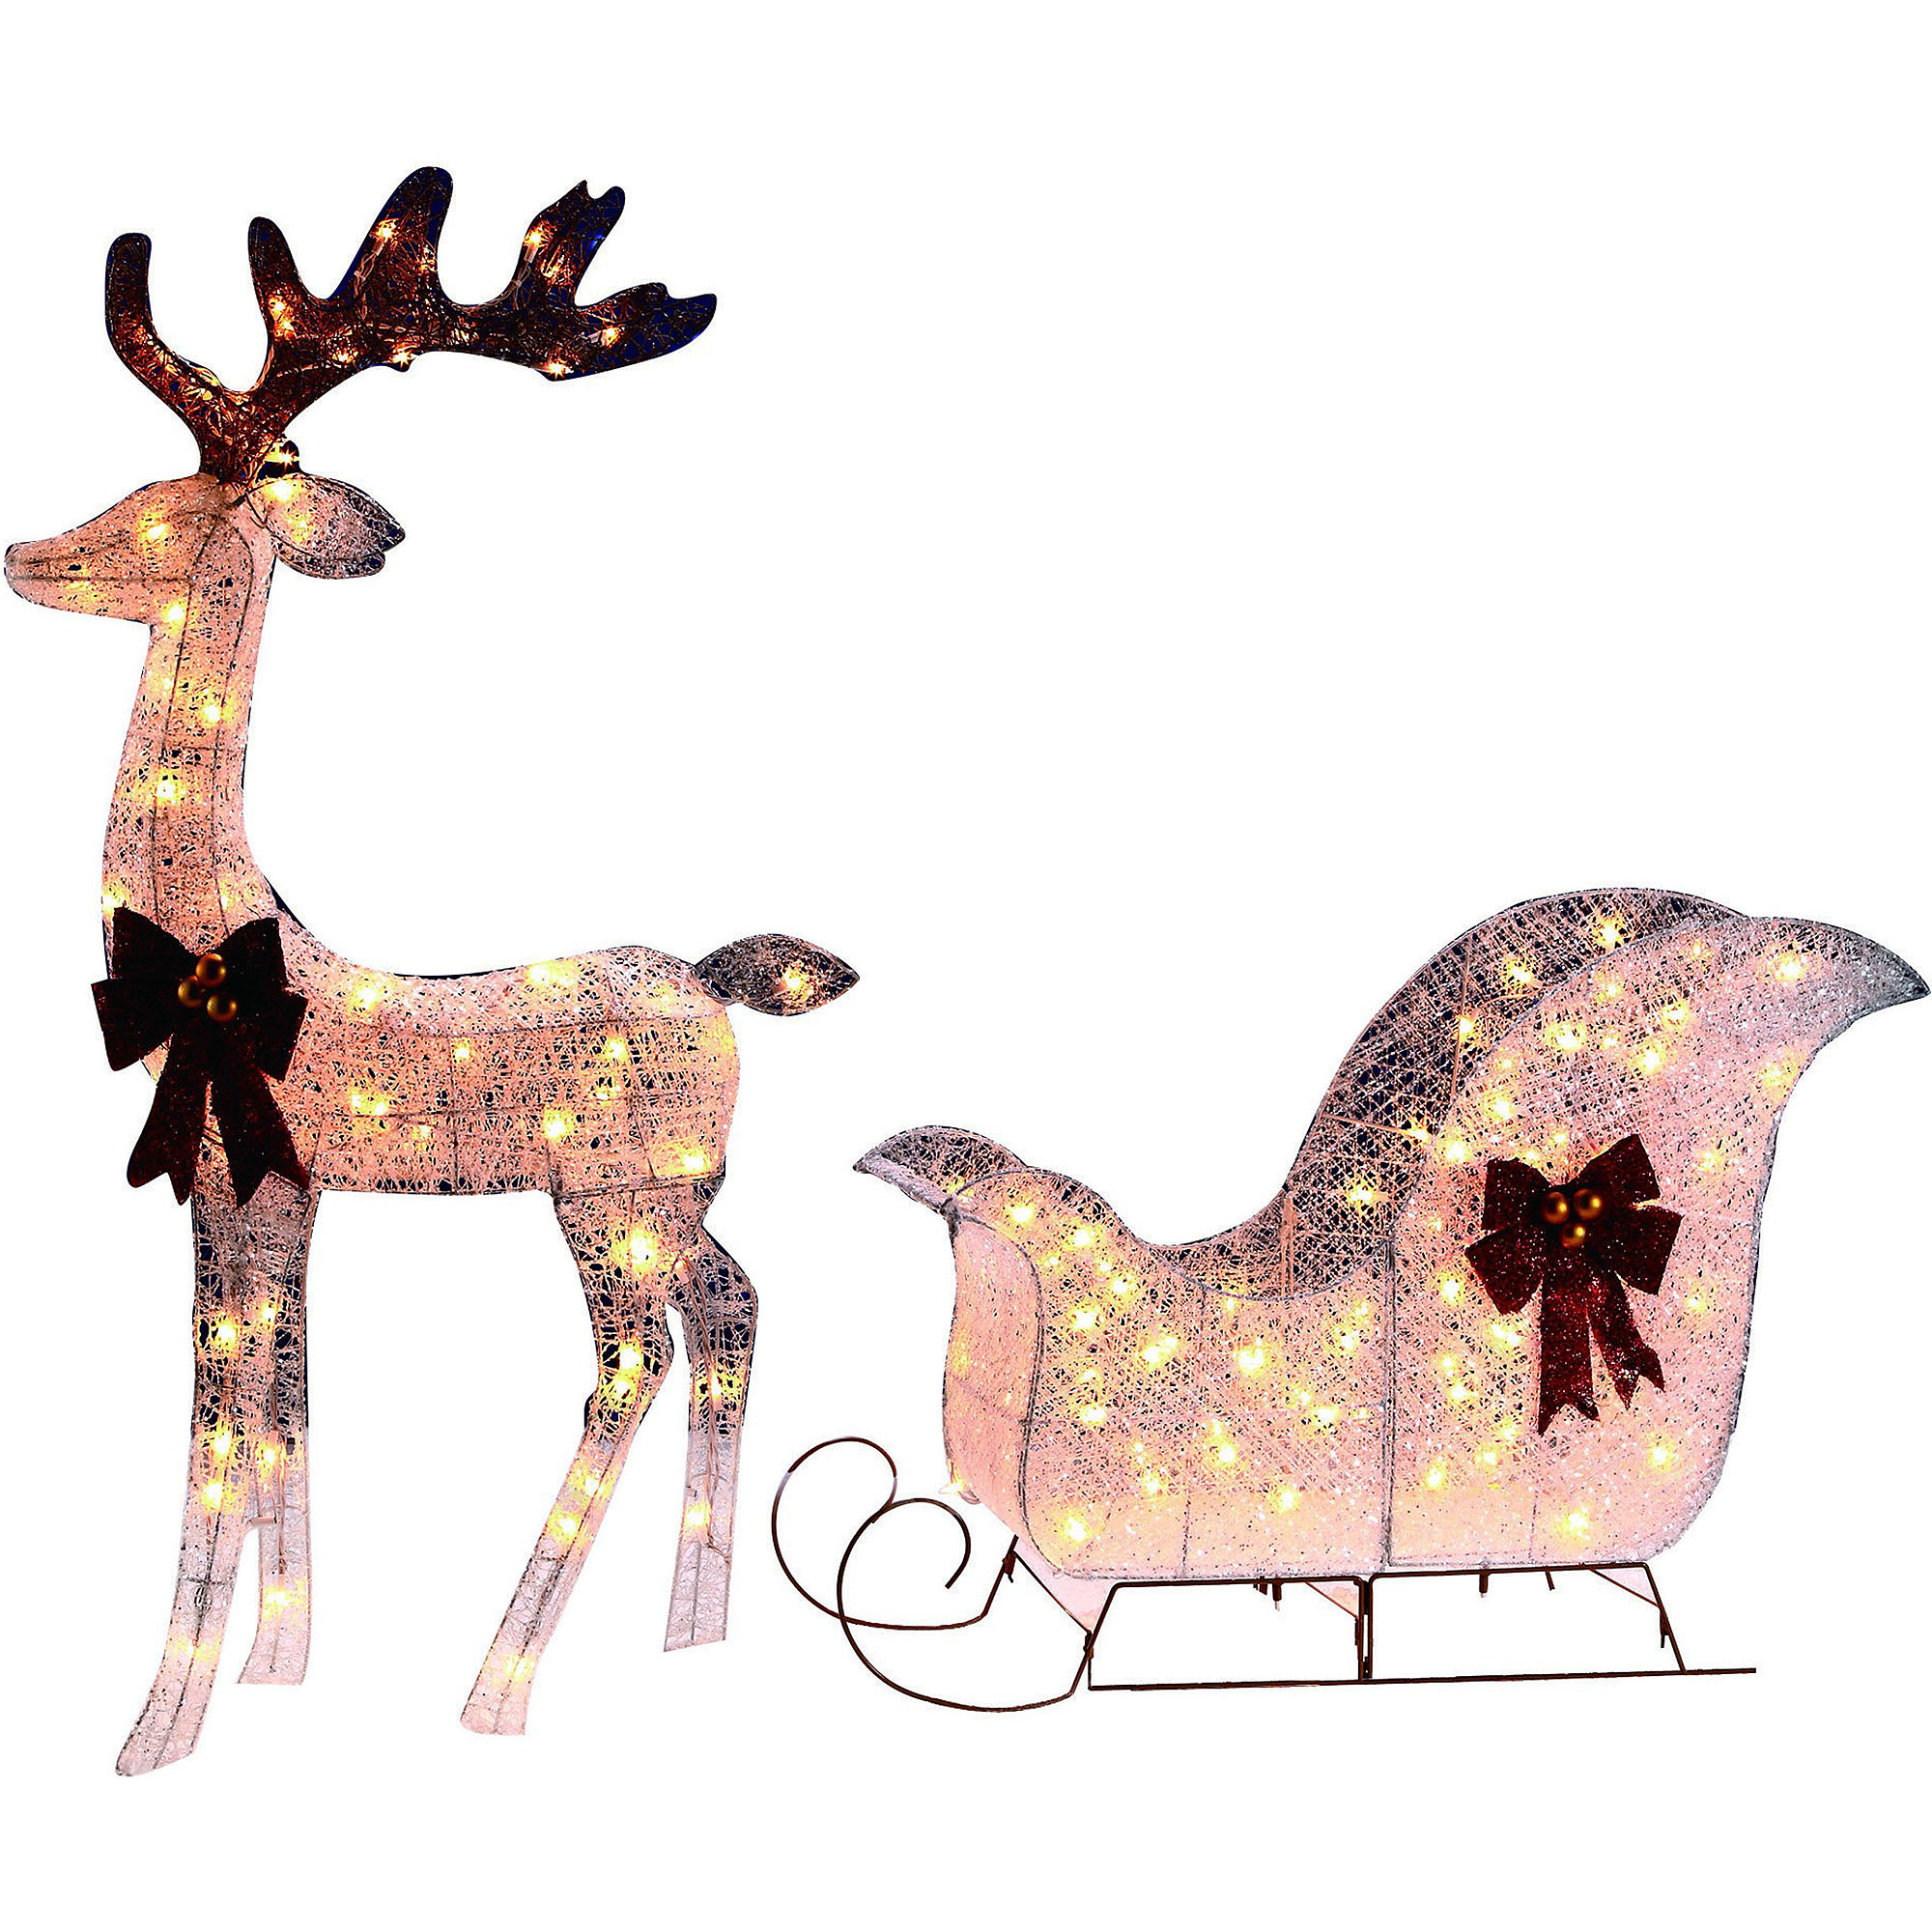 holiday time 52 deer and 38 sleigh light sculpture walmartcom - Walmart Christmas Yard Decorations